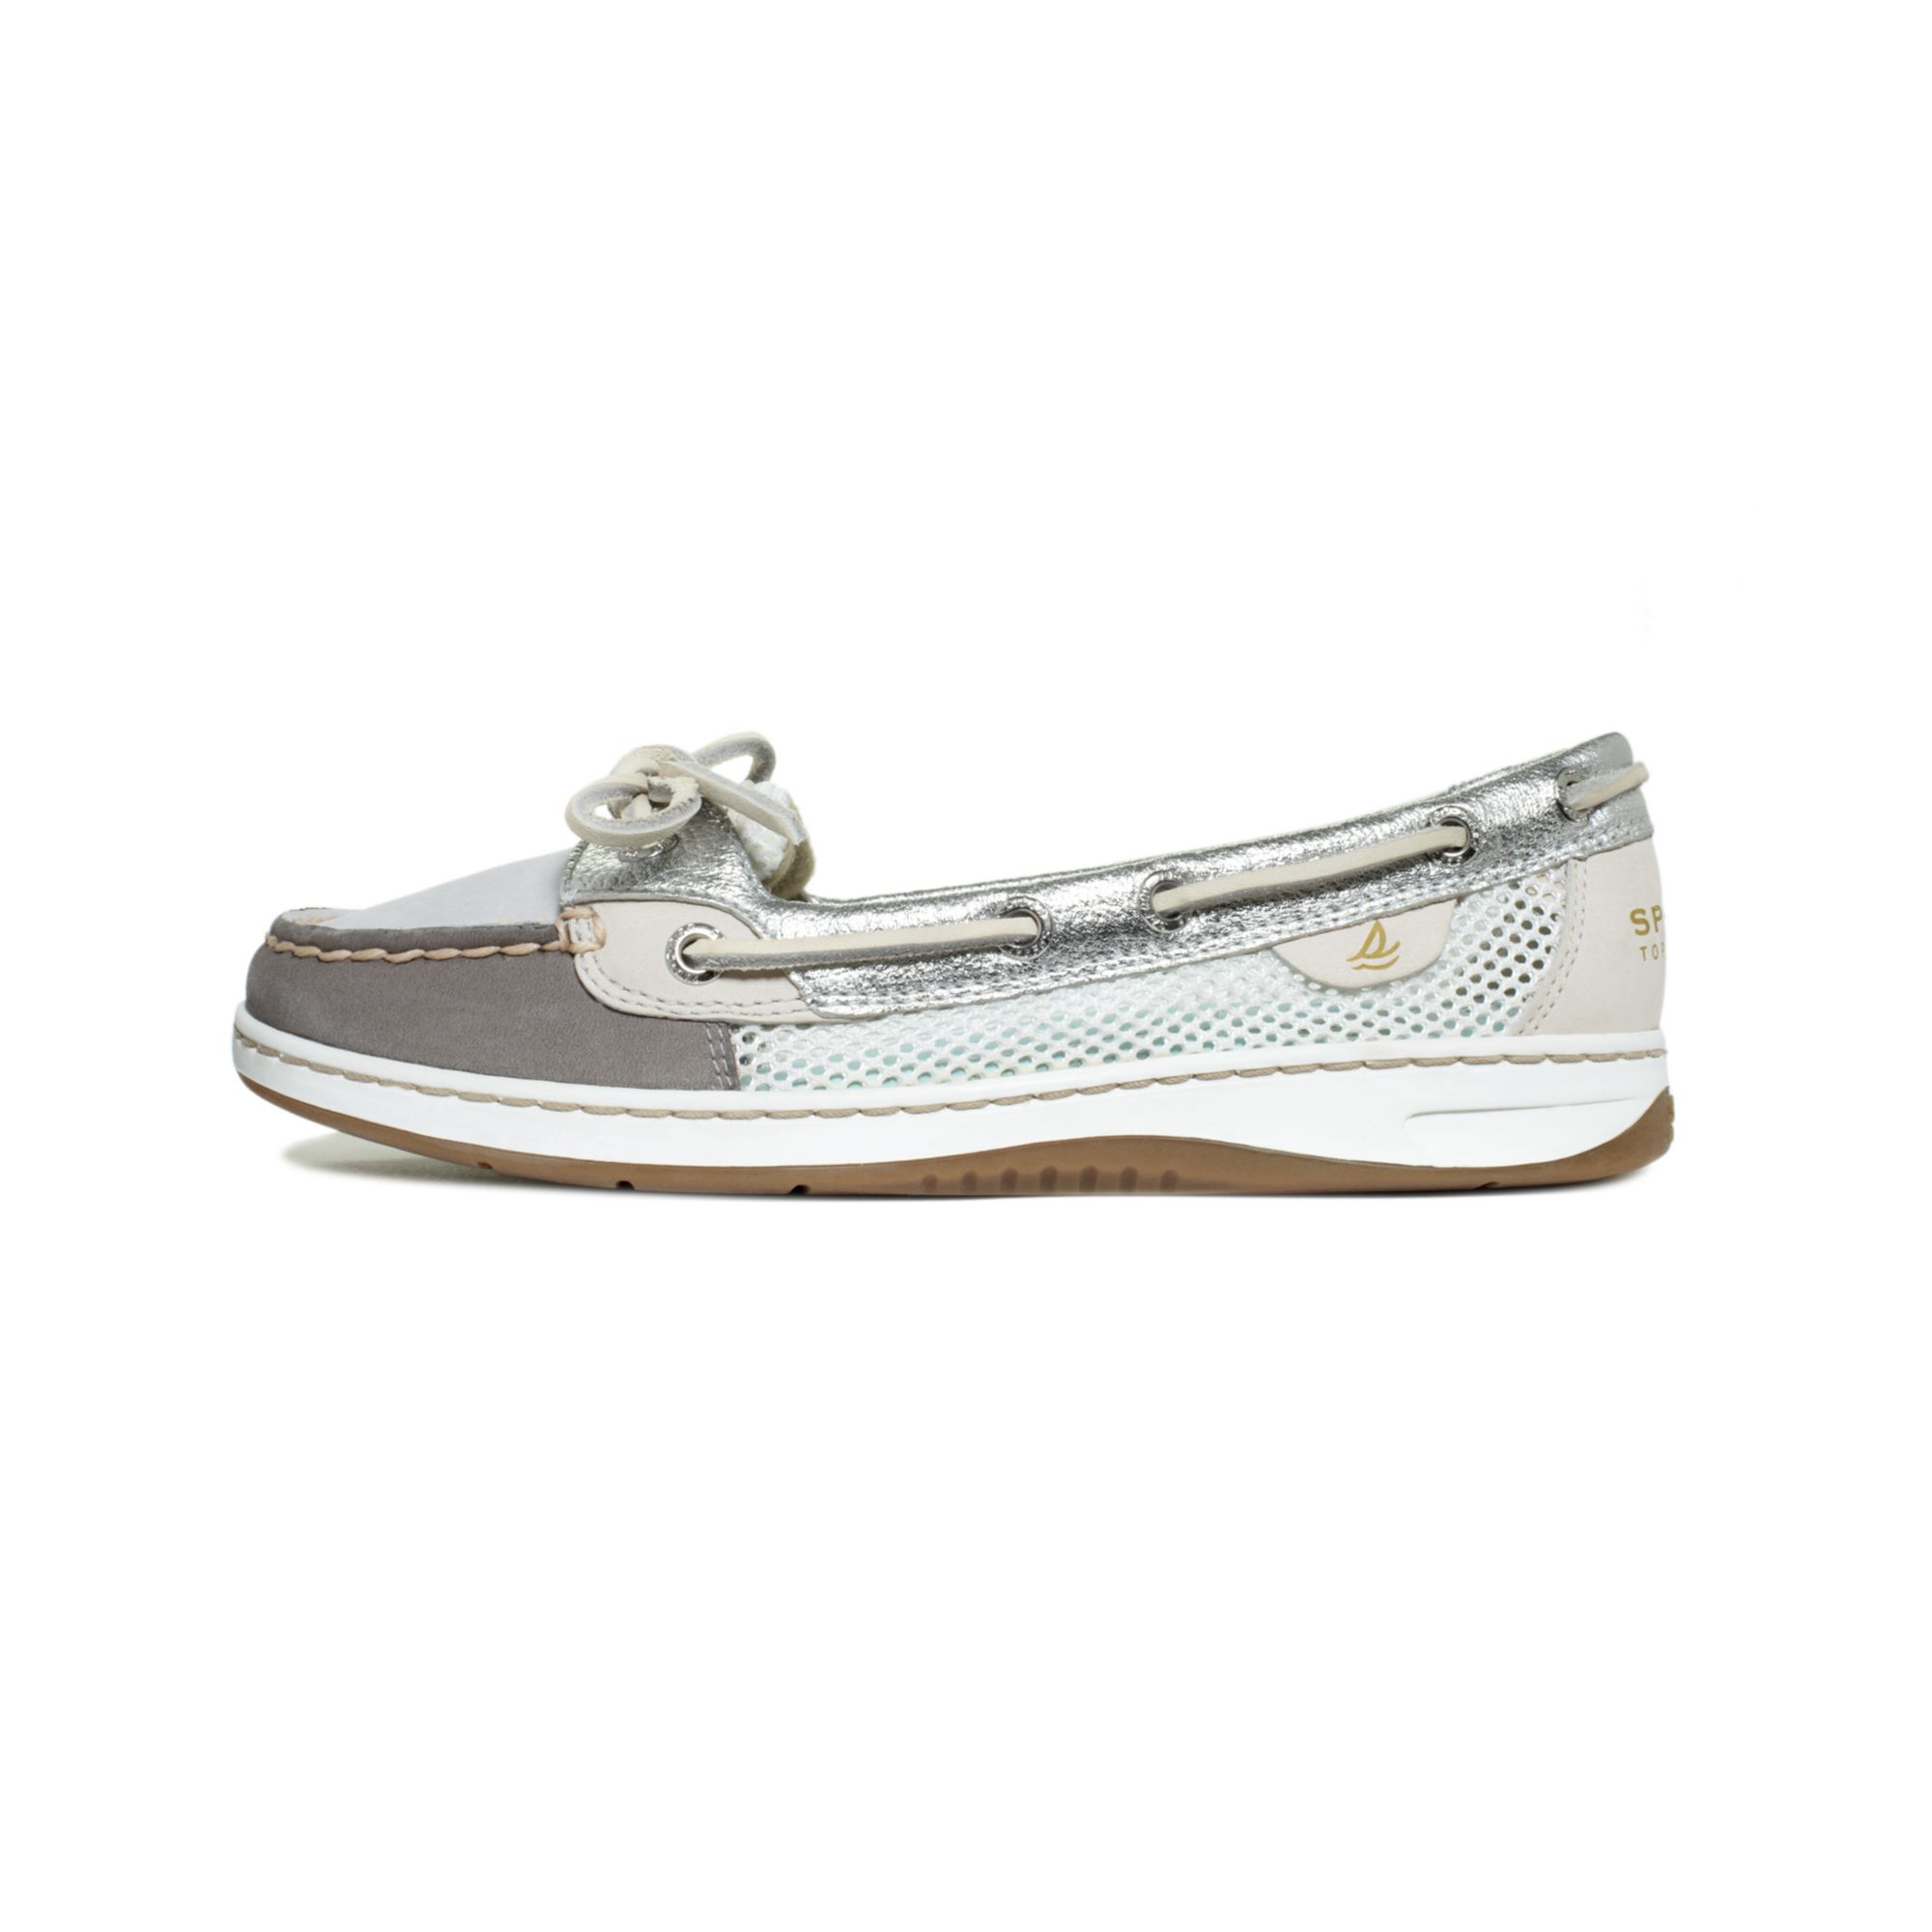 sperry top sider womens angelfish boat shoes in gray grey